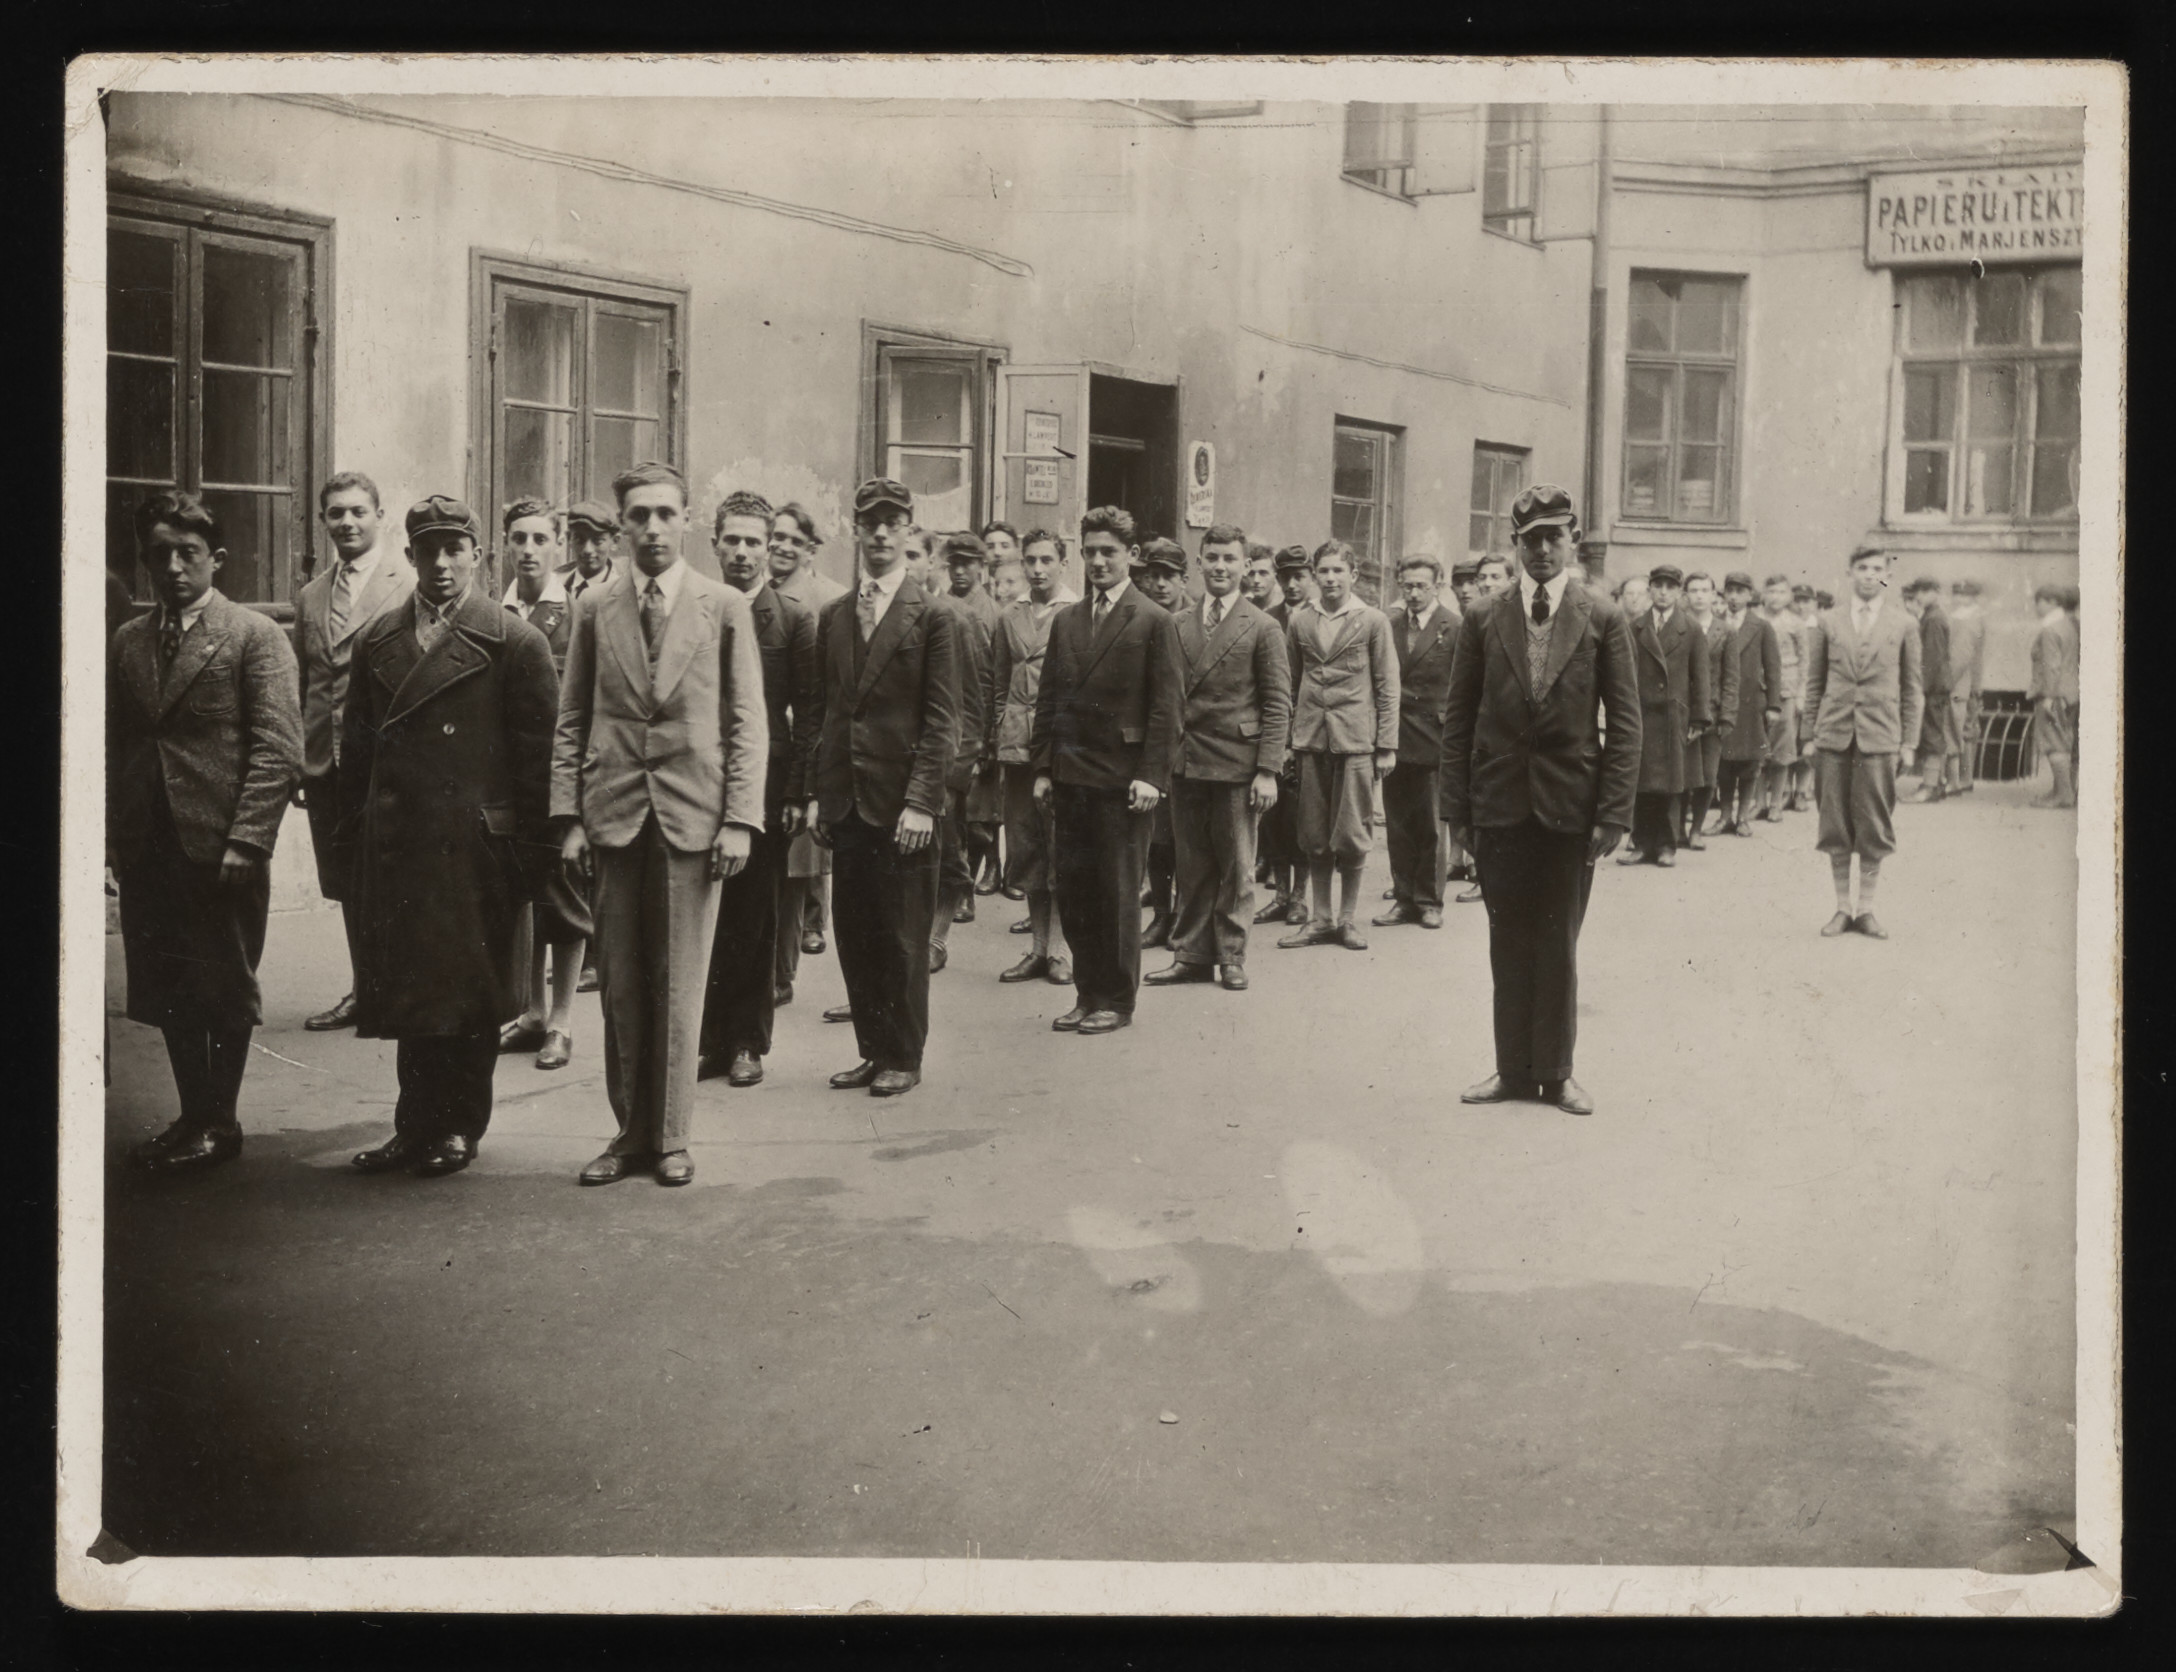 Members of the Maccabi Jewish sports club stand in formation in a courtyard in Warsaw.    Among those pictured is Marek Asz, the future husband of Gina Tabaczynska.